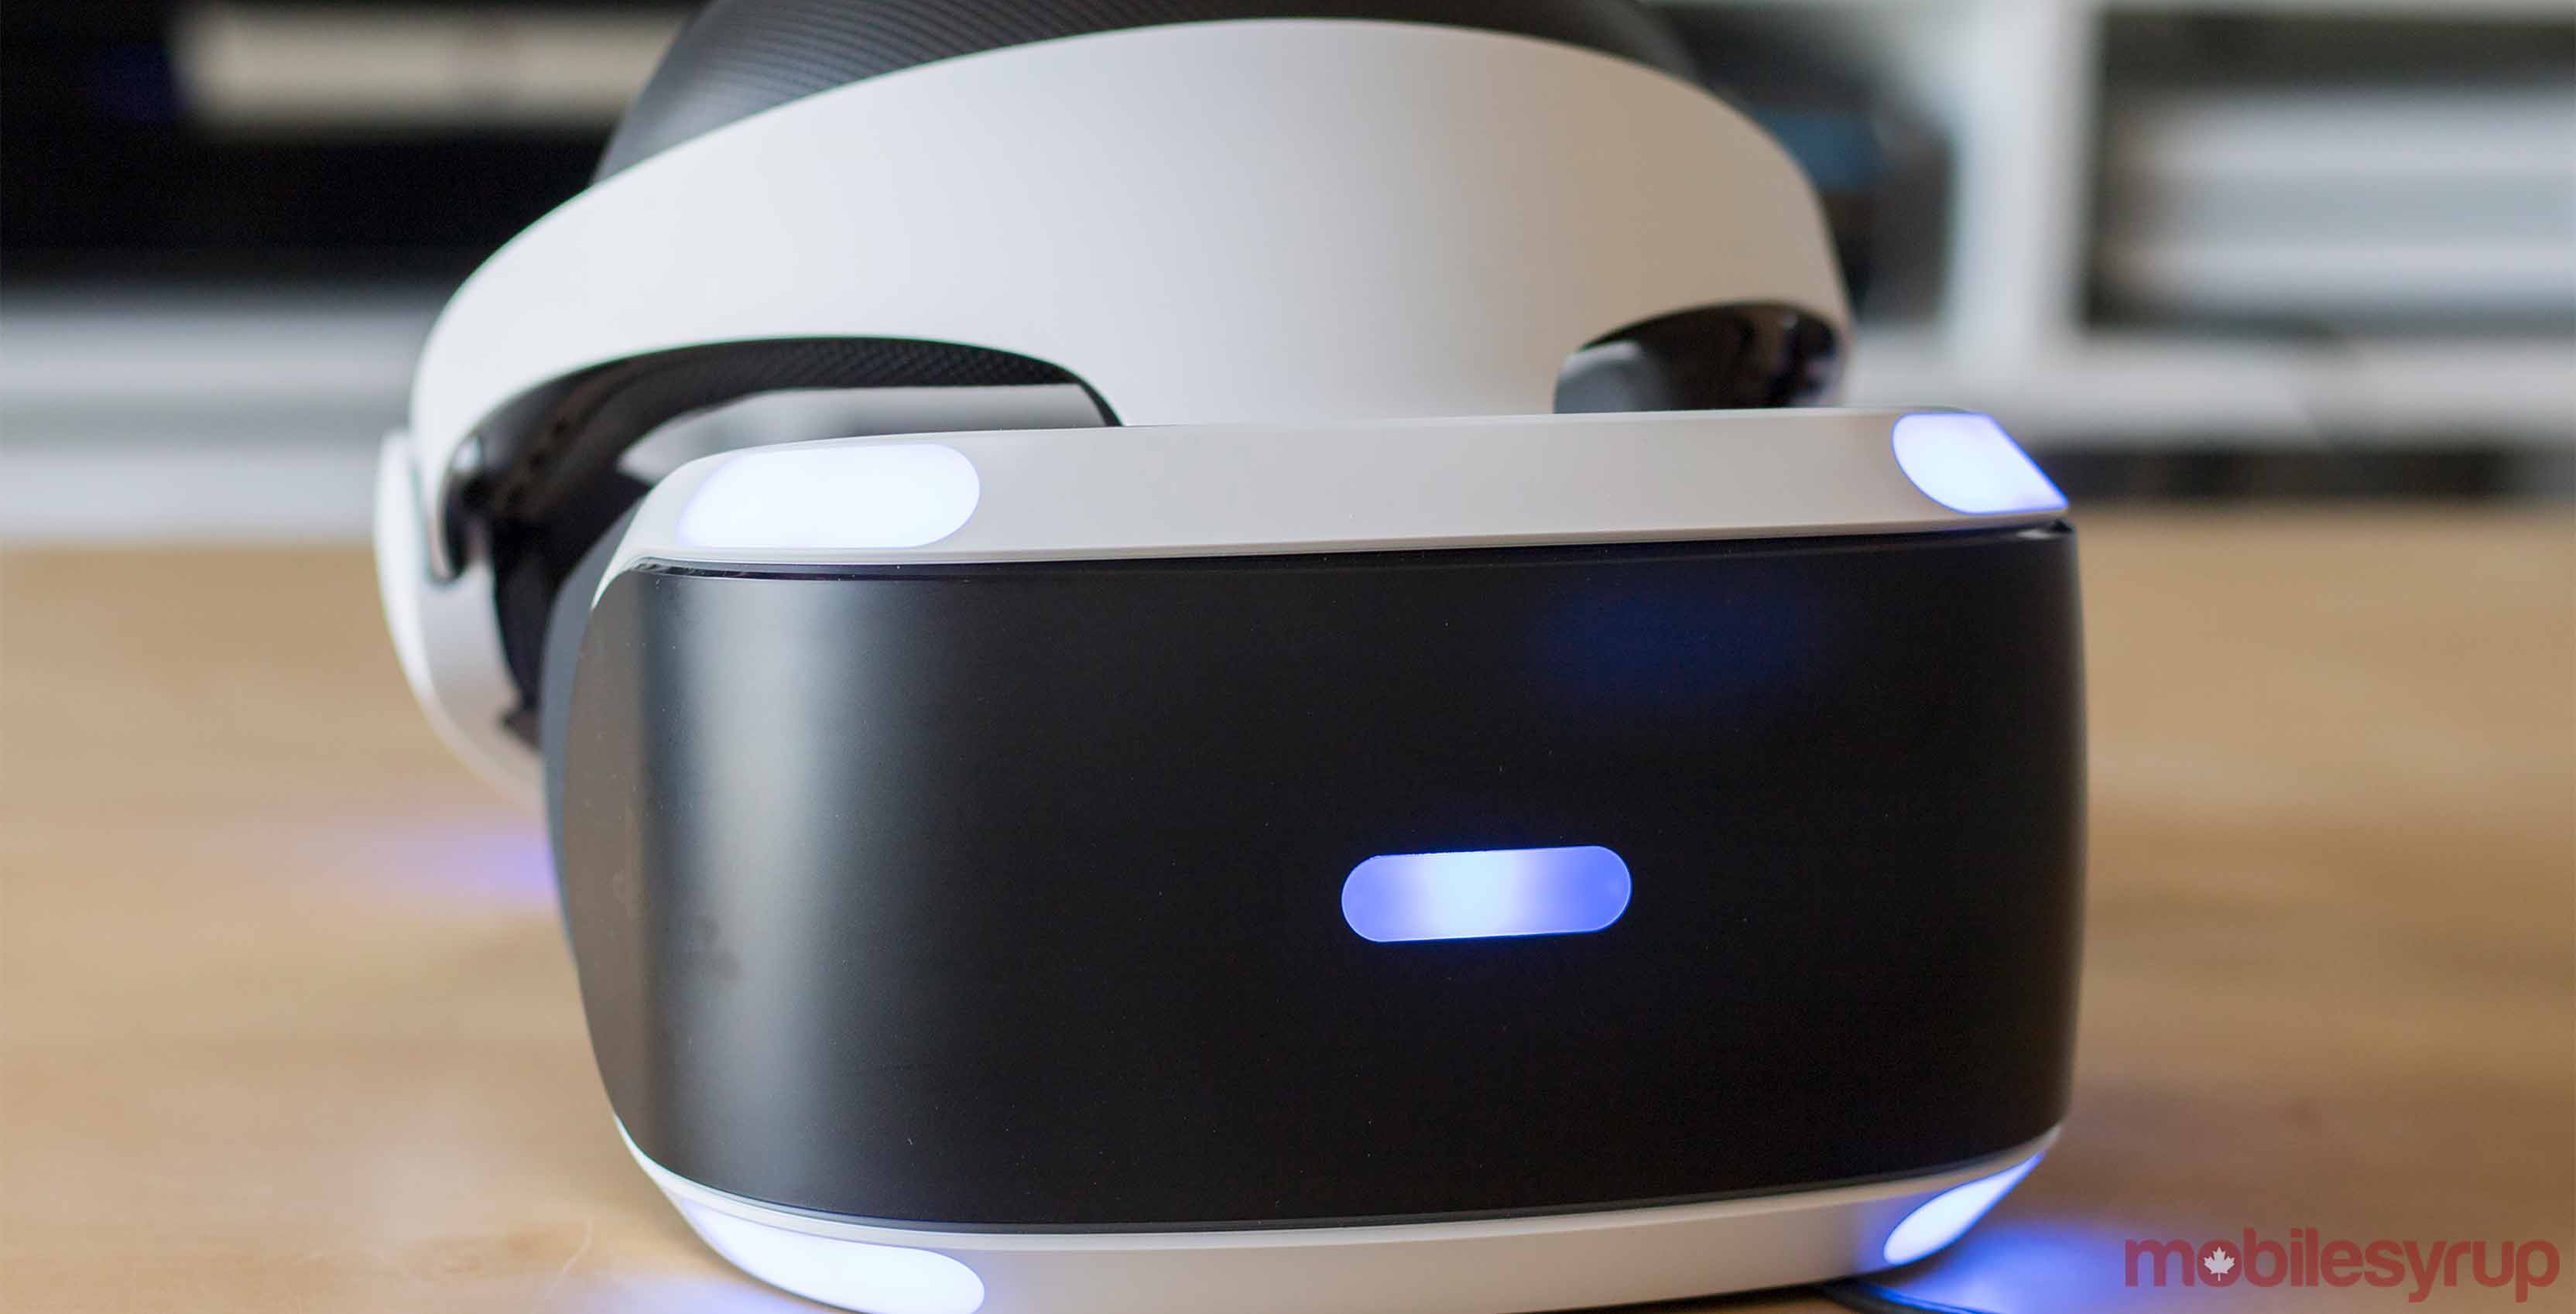 Sony celebrates two years of PlayStation VR with game sales and reveals